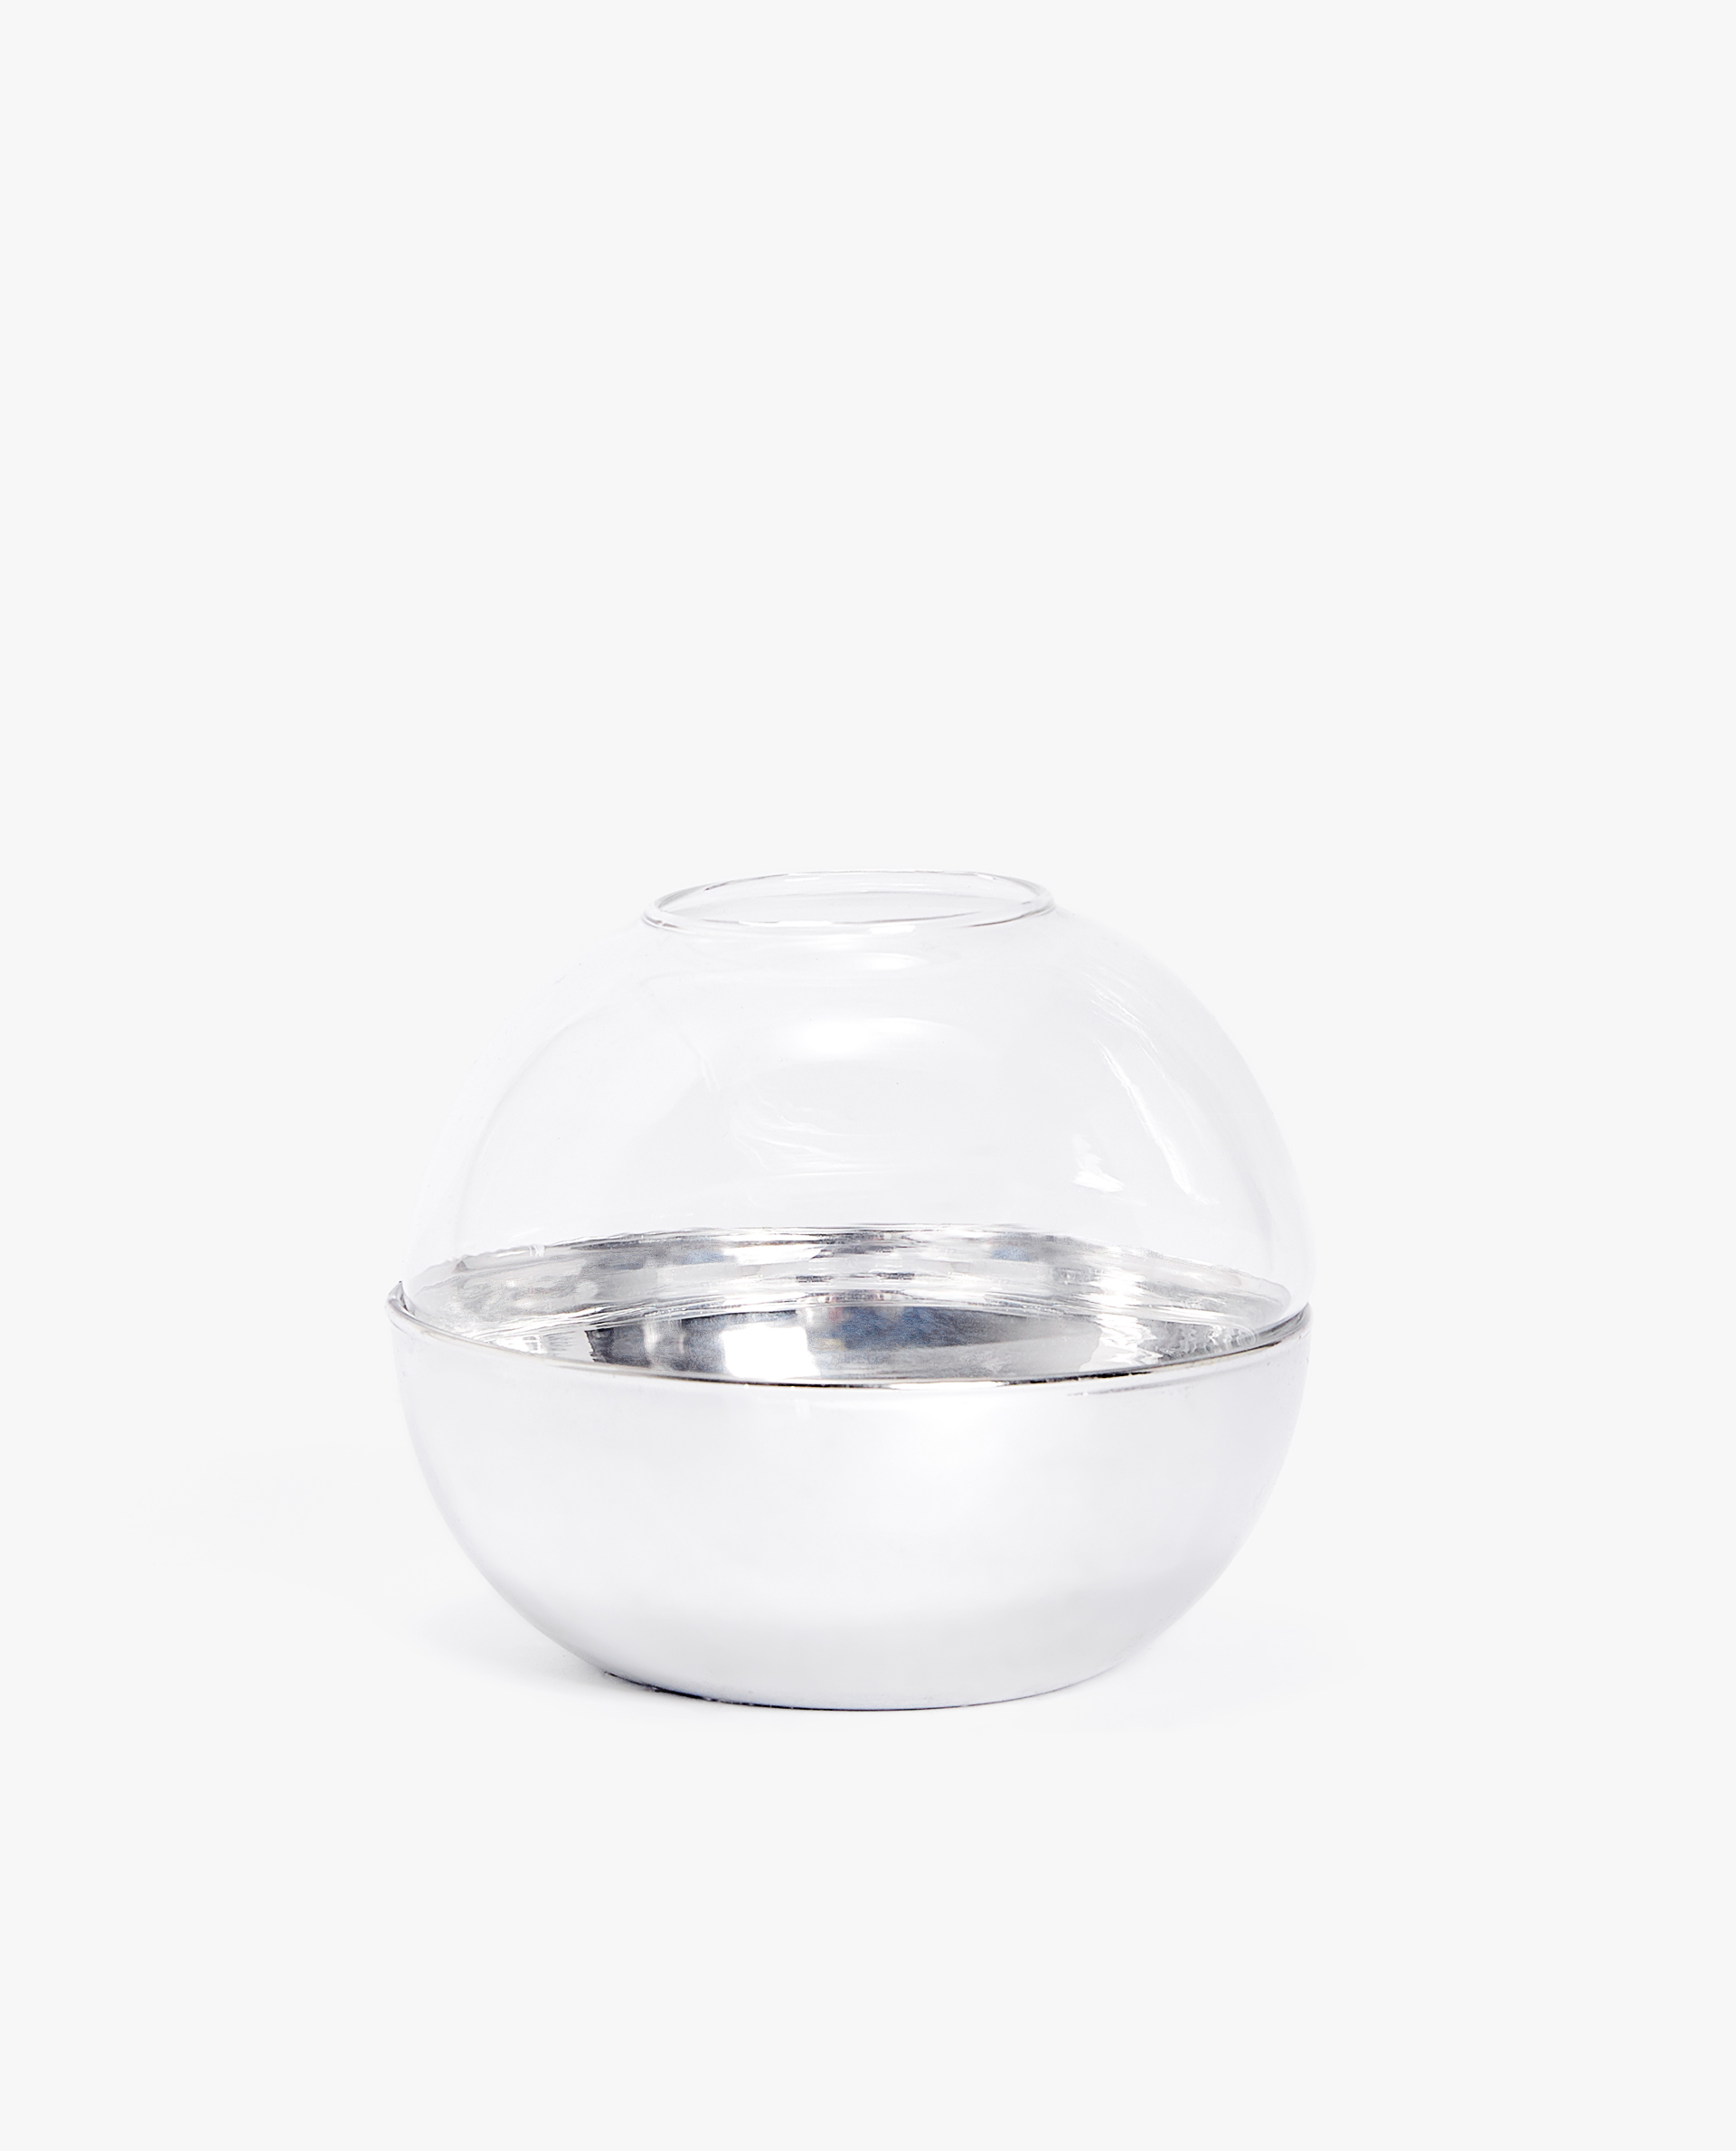 029cfa2ae4 Tealight holder with silver base - TEALIGHT HOLDERS - DECORATION ...